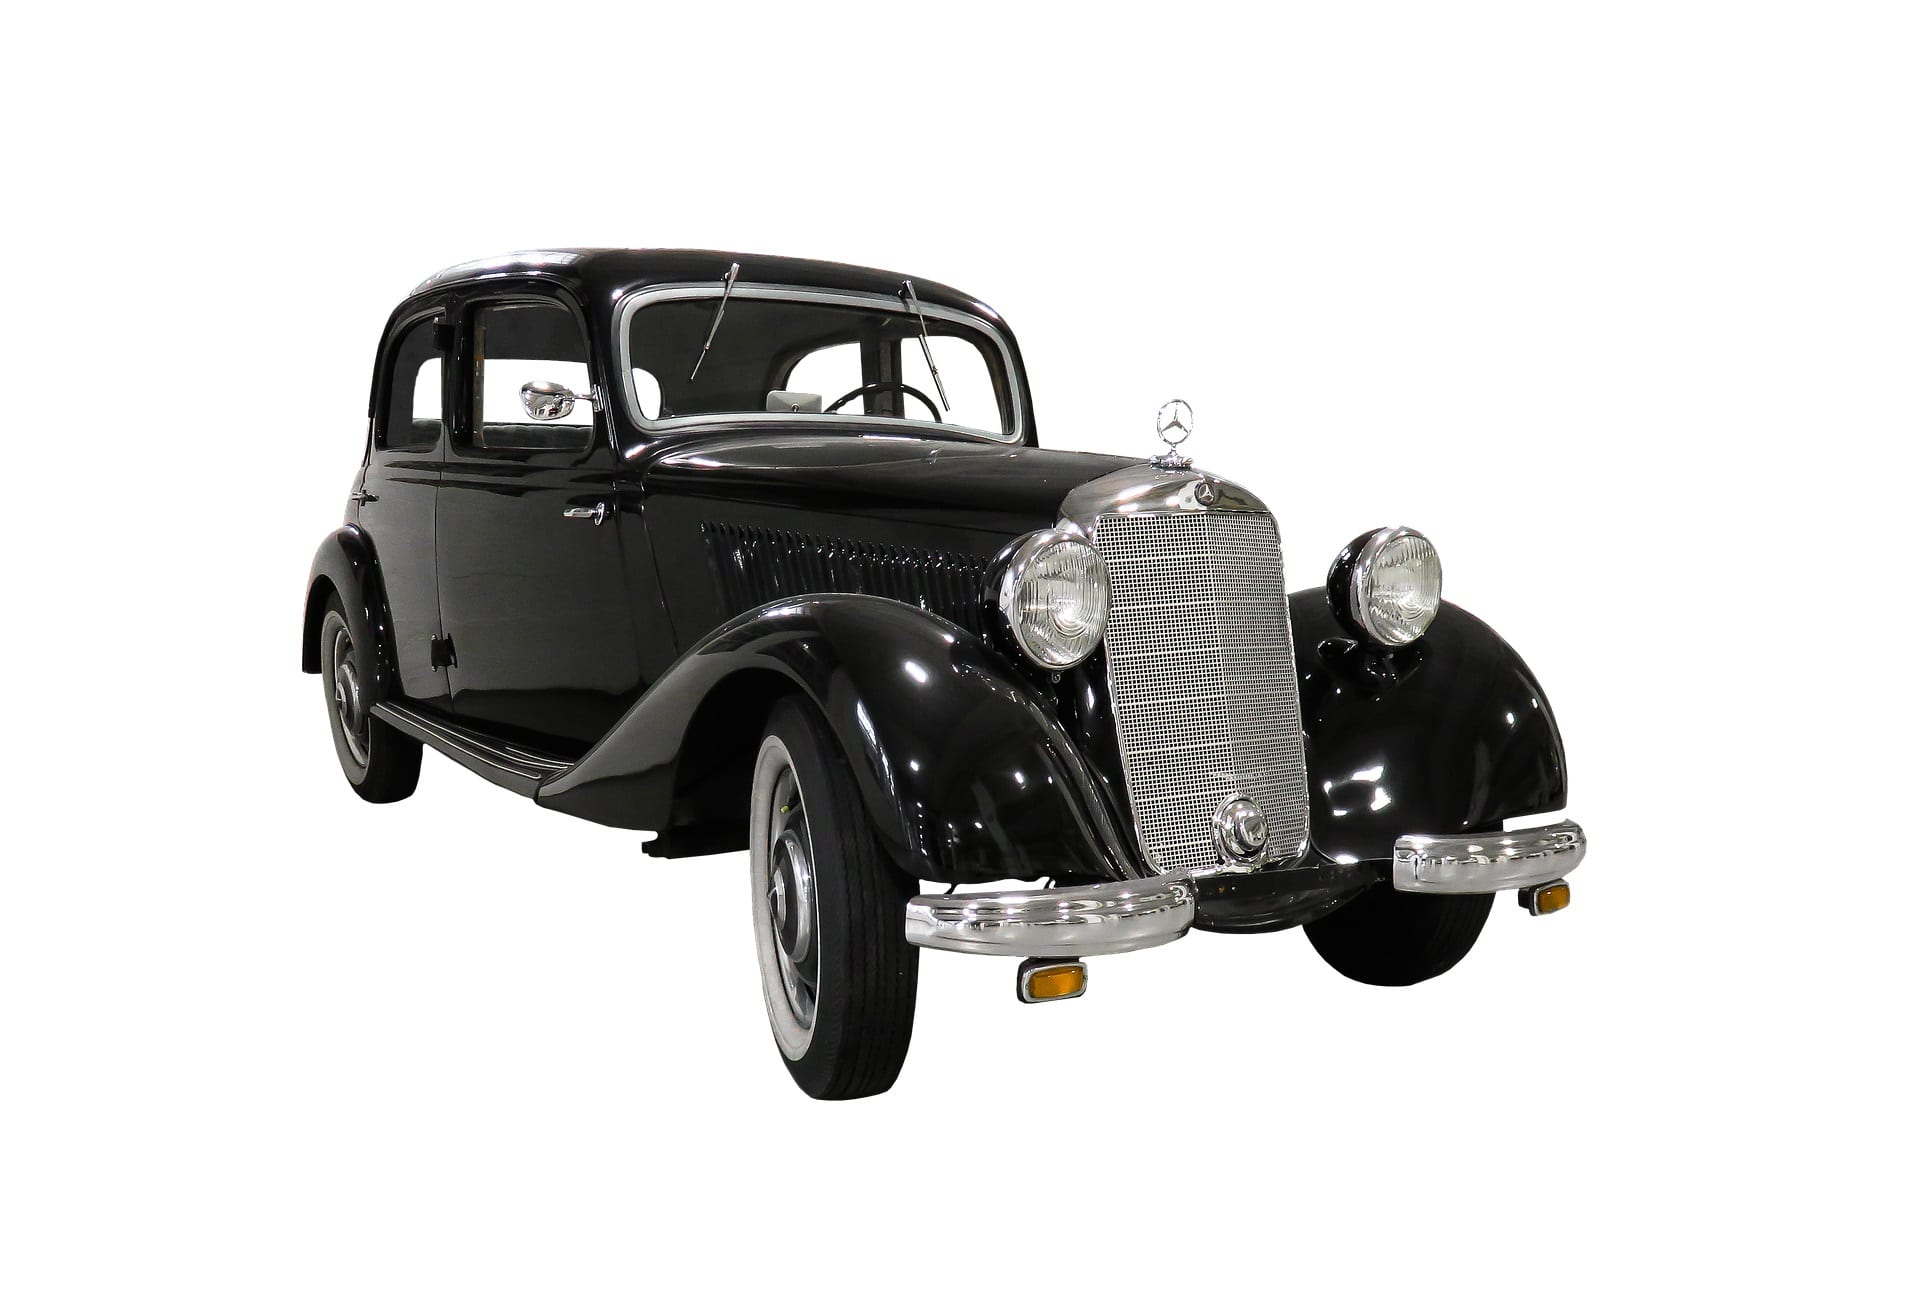 Hitler\'s Car Up for Auction - Market Prime News - News and Press ...